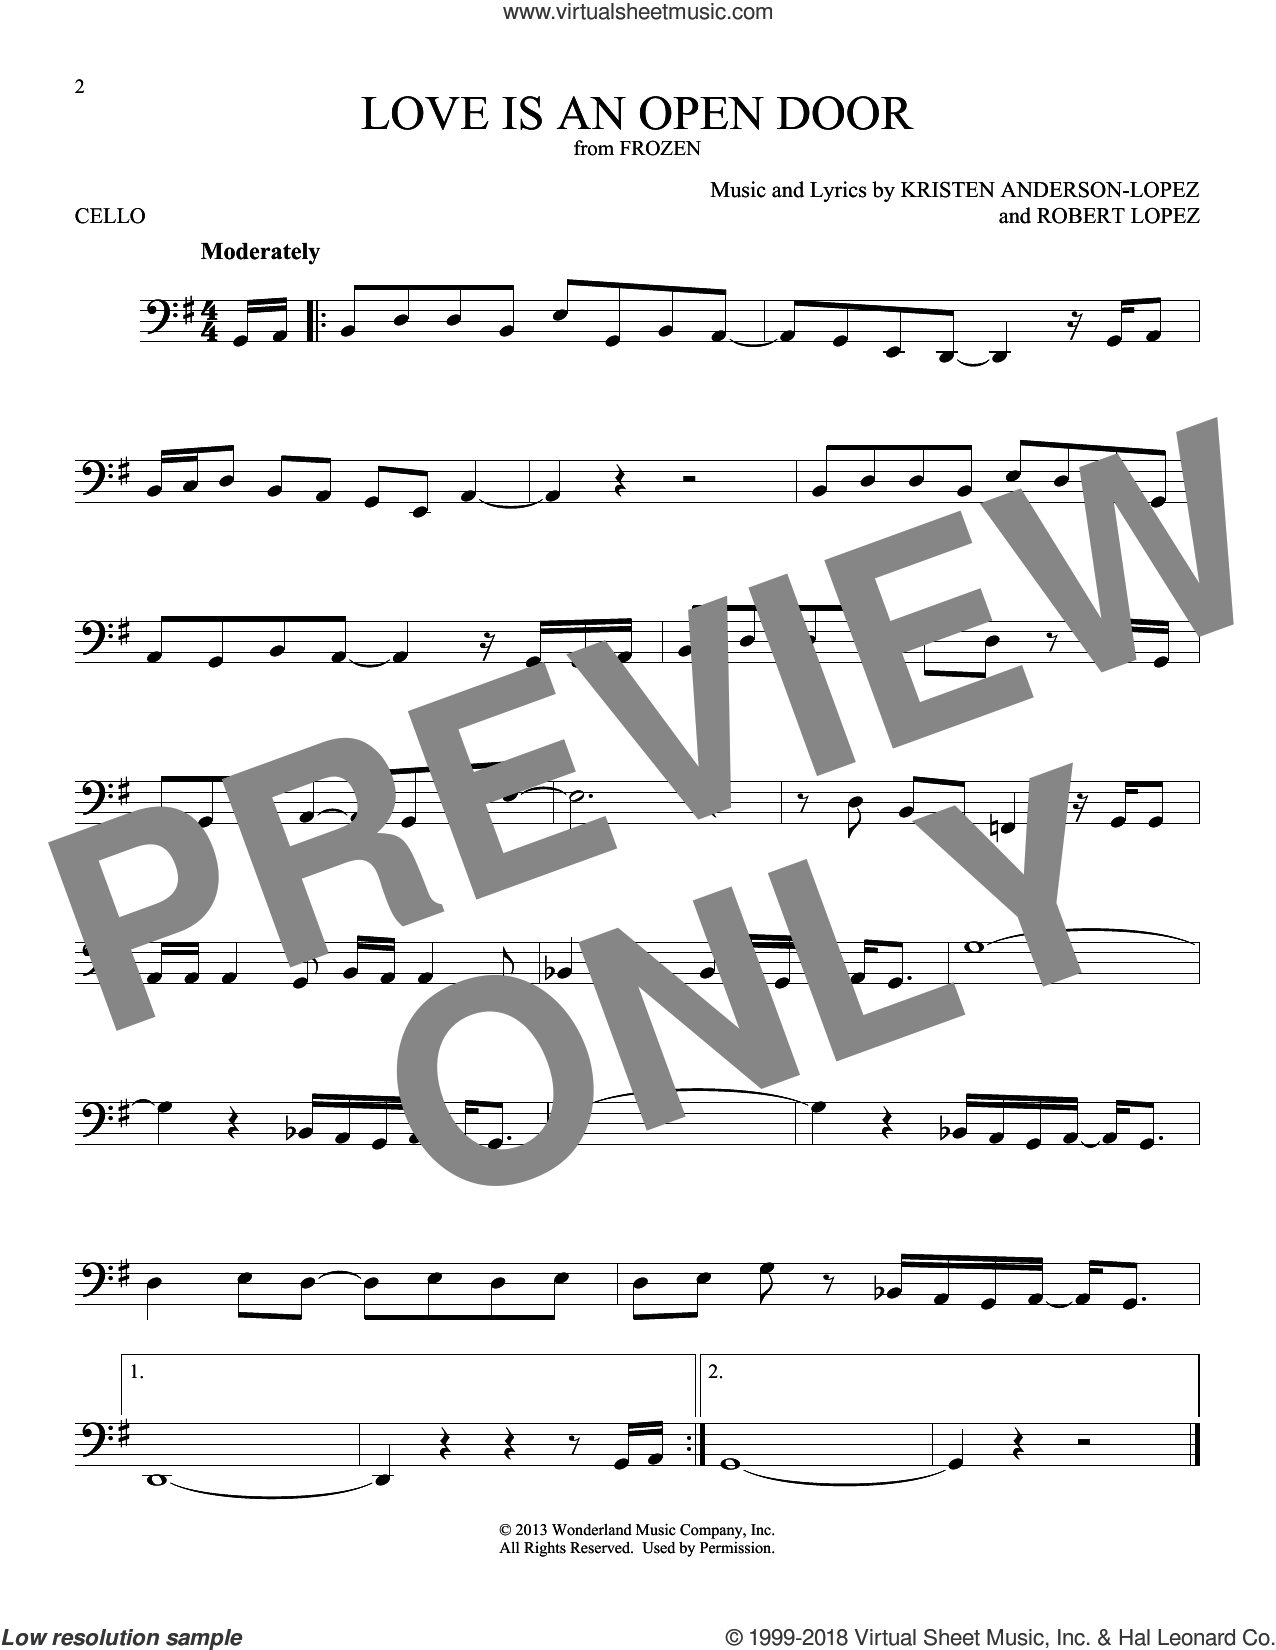 Love Is An Open Door (from Disney's Frozen) sheet music for cello solo by Kristen Bell & Santino Fontana, Kristen Anderson-Lopez and Robert Lopez, intermediate skill level